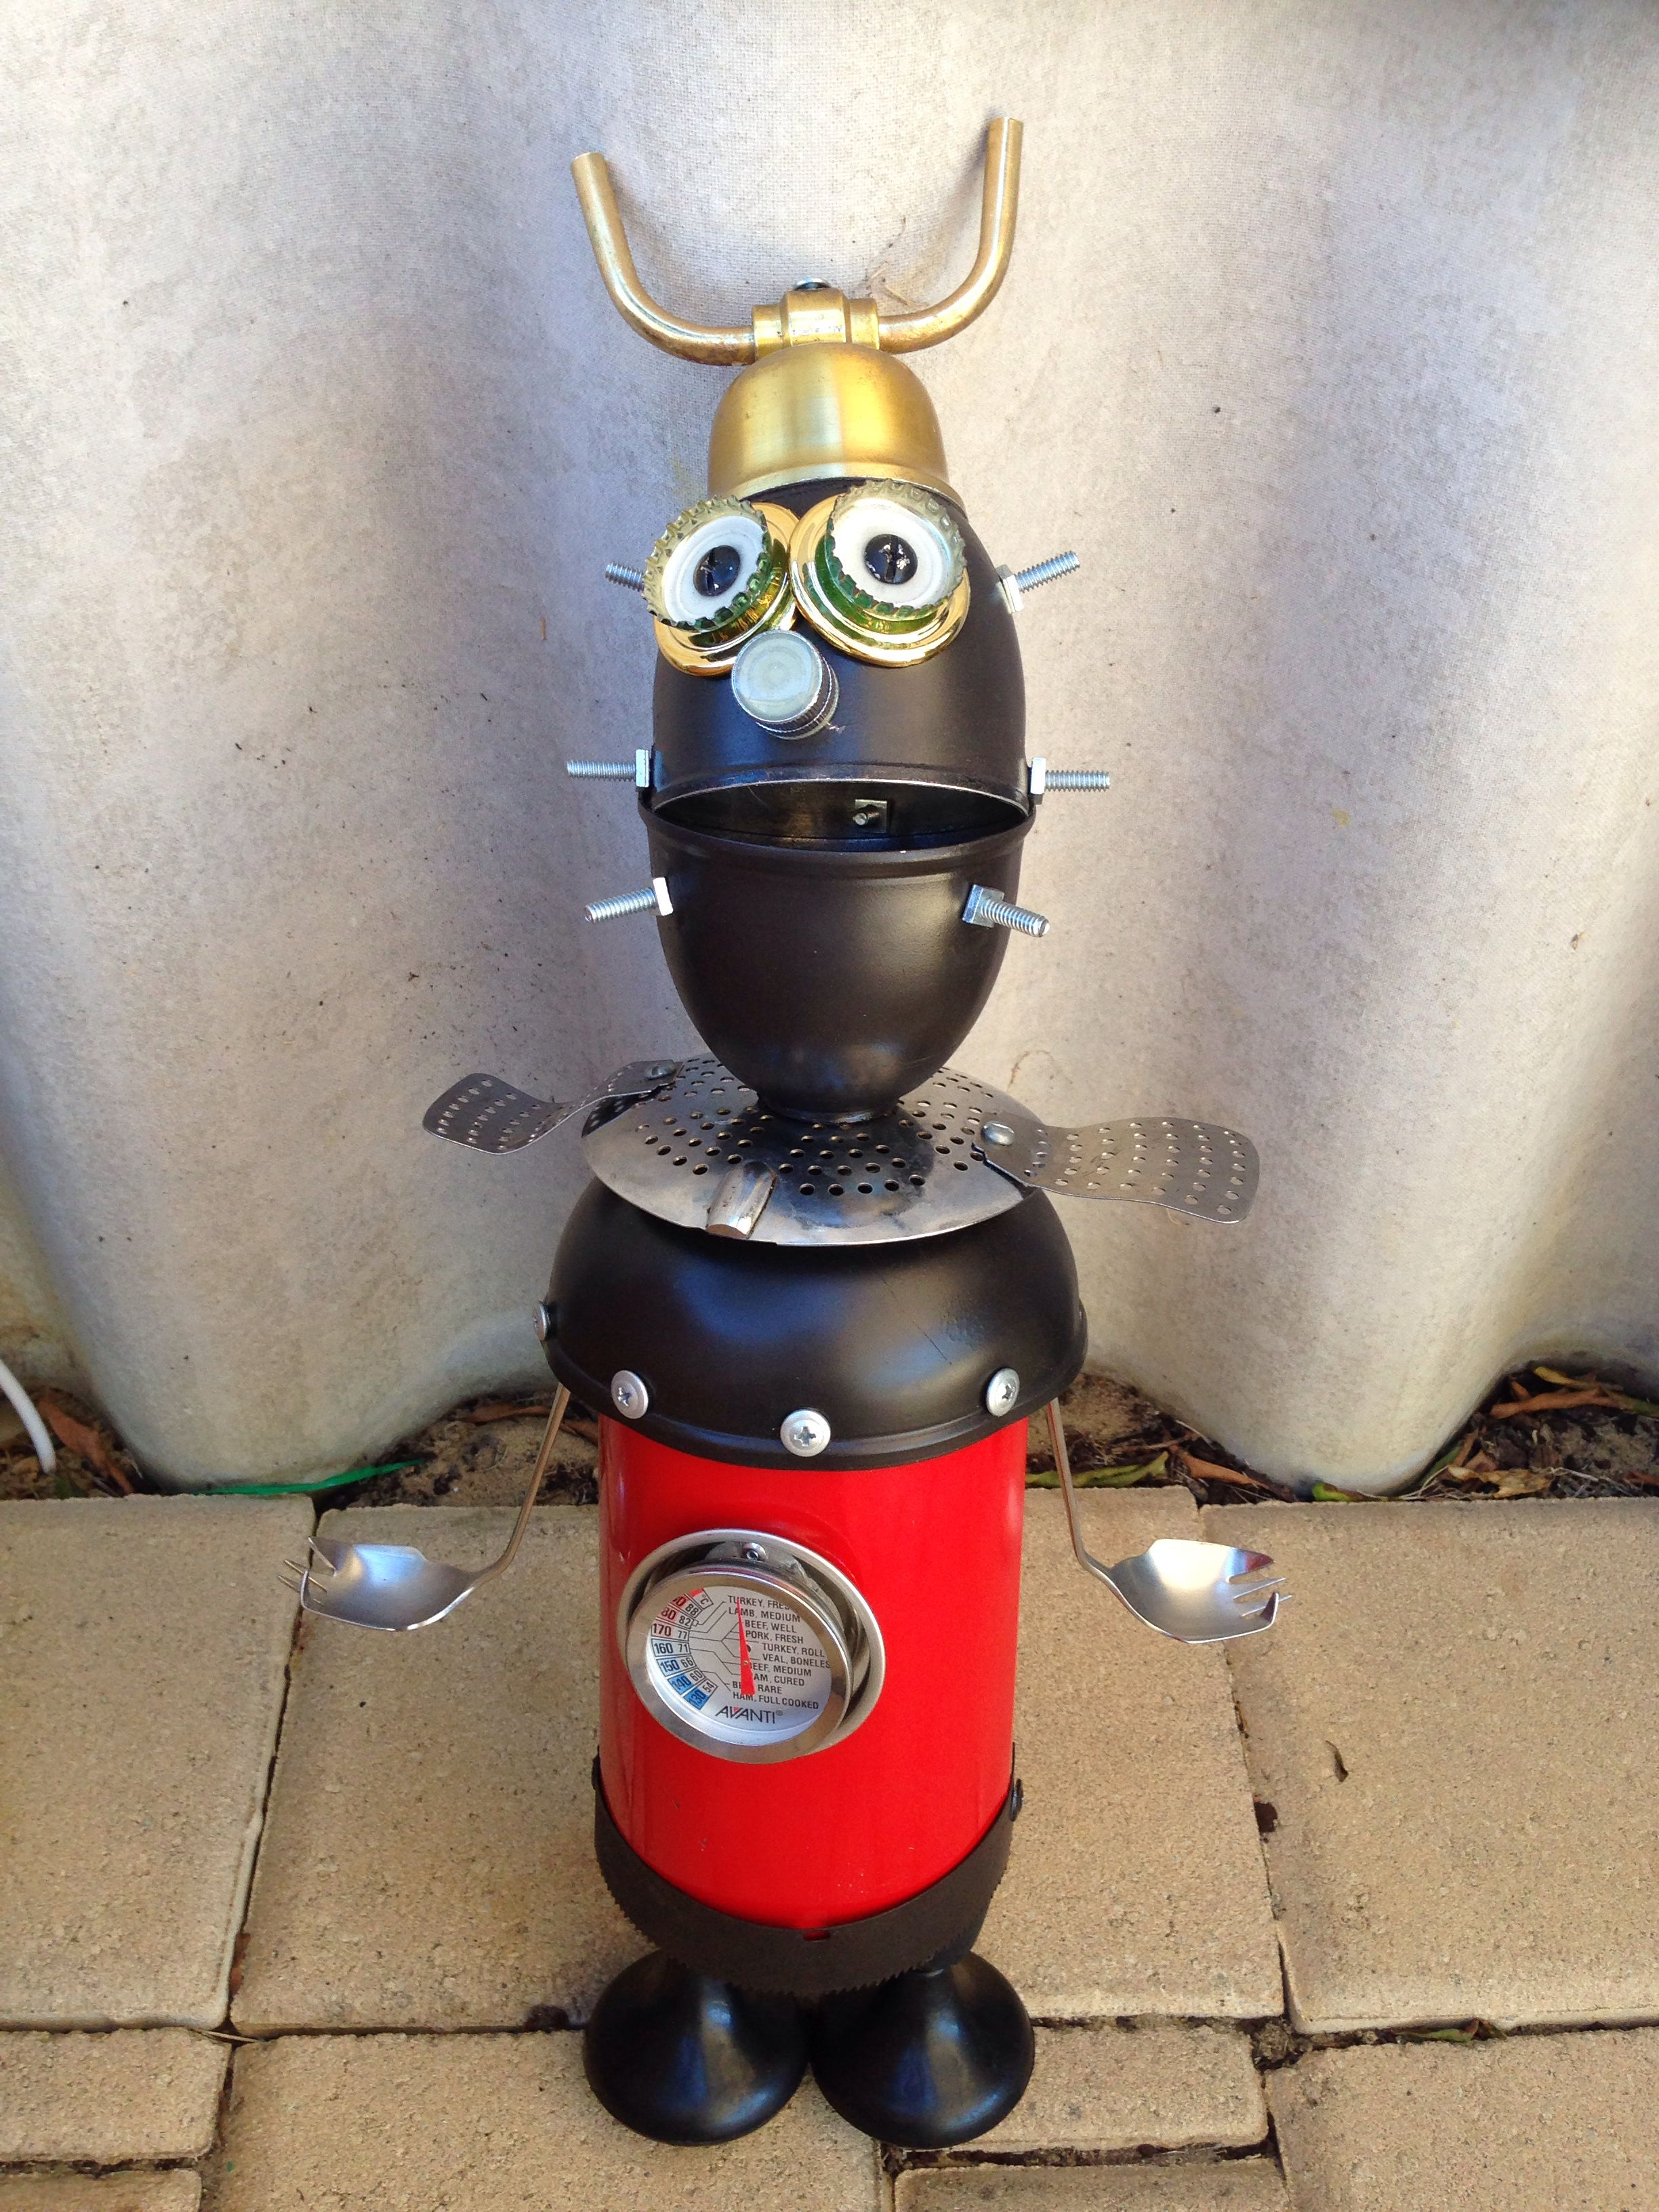 Robot made from recycled material